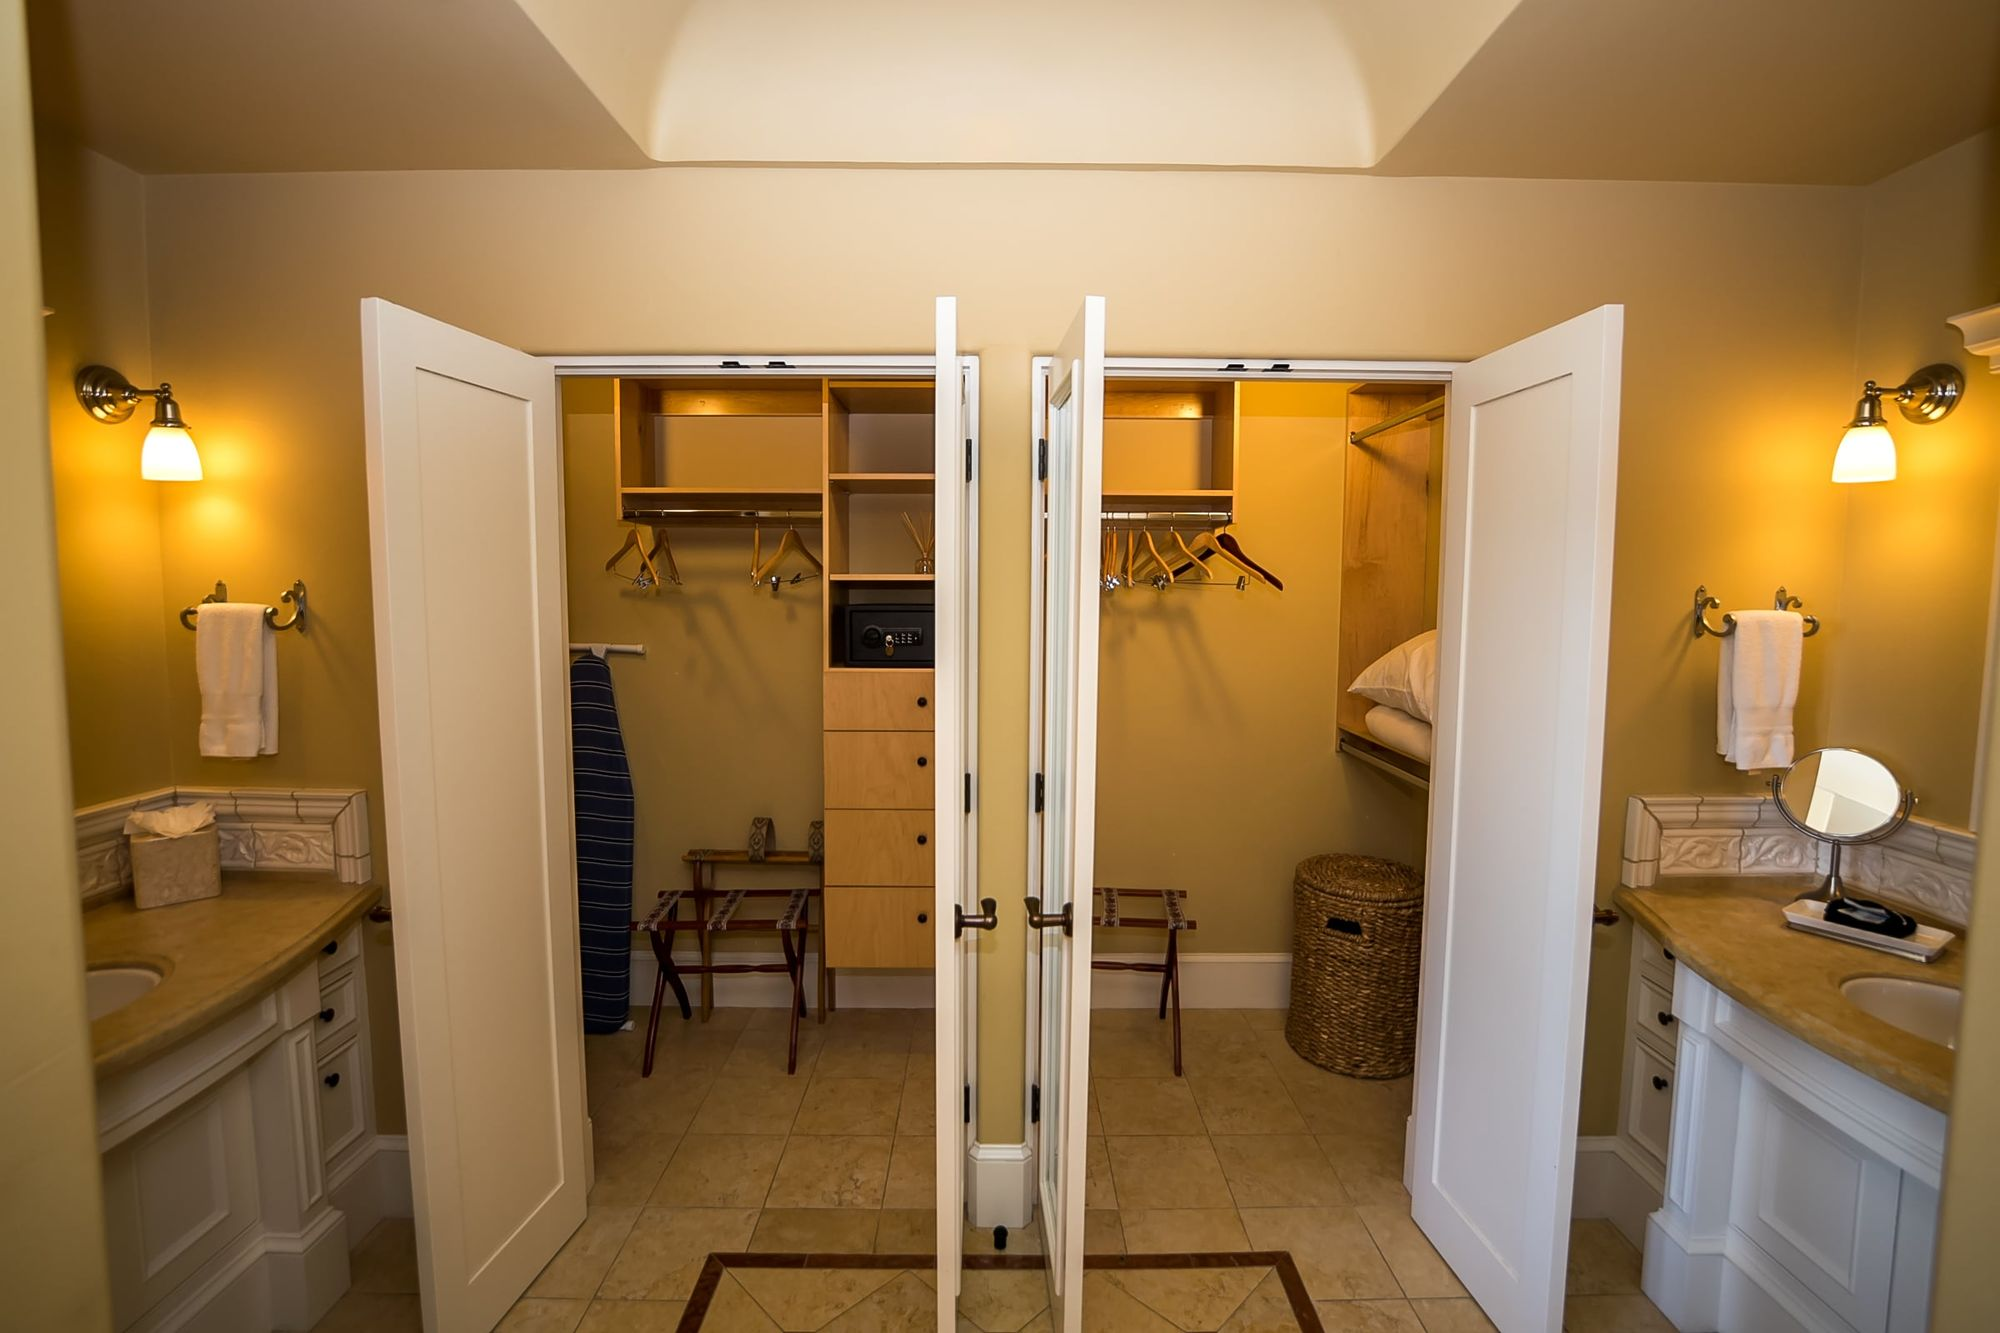 Twin large walk-in closets and vanities